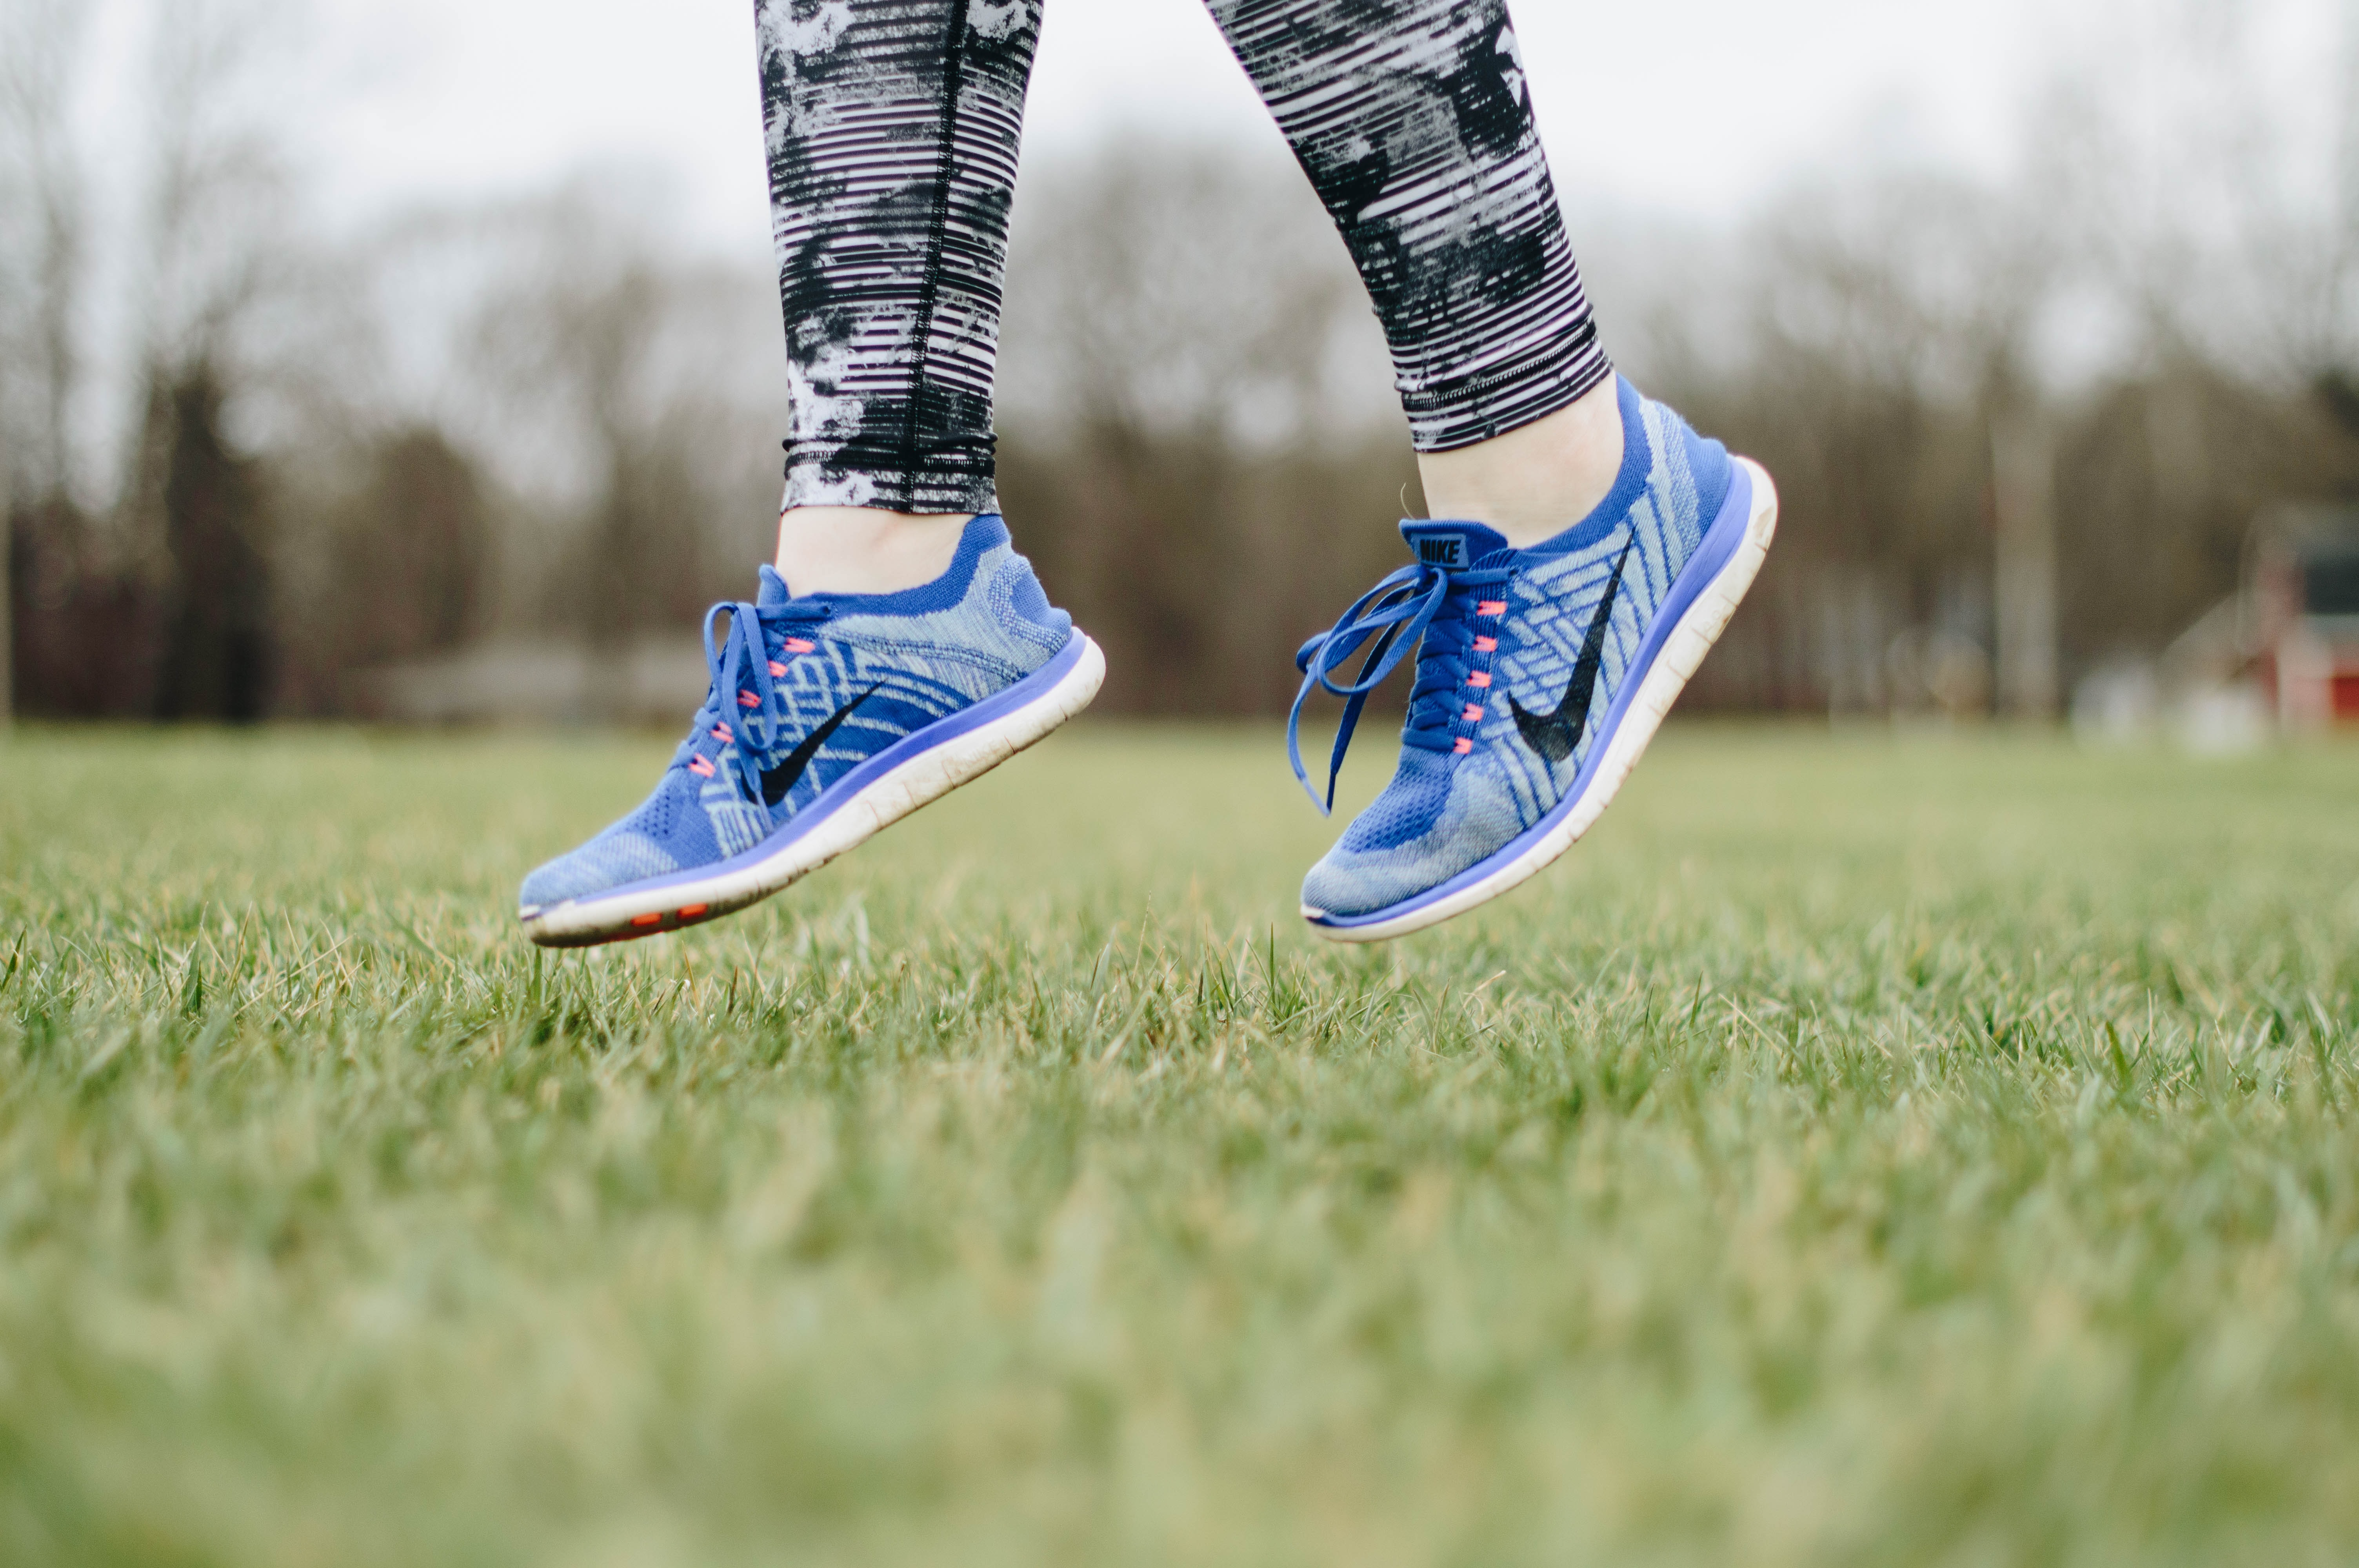 person in blue Nike sneaker jumping